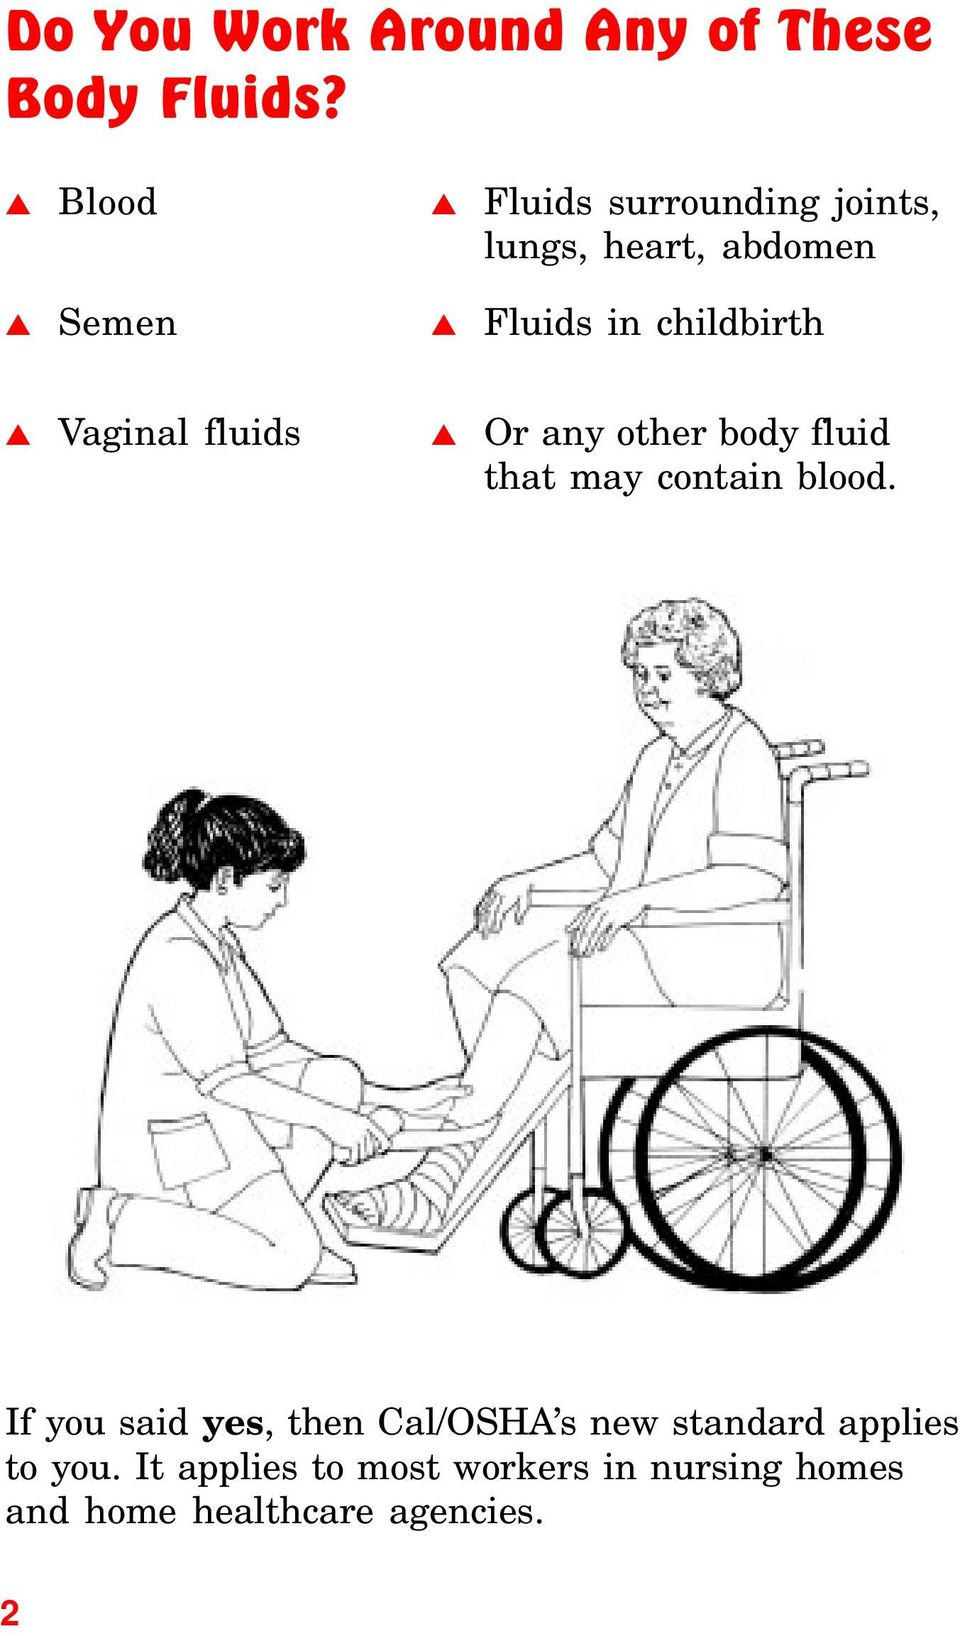 Vaginal fluids Or any other body fluid that may contain blood.